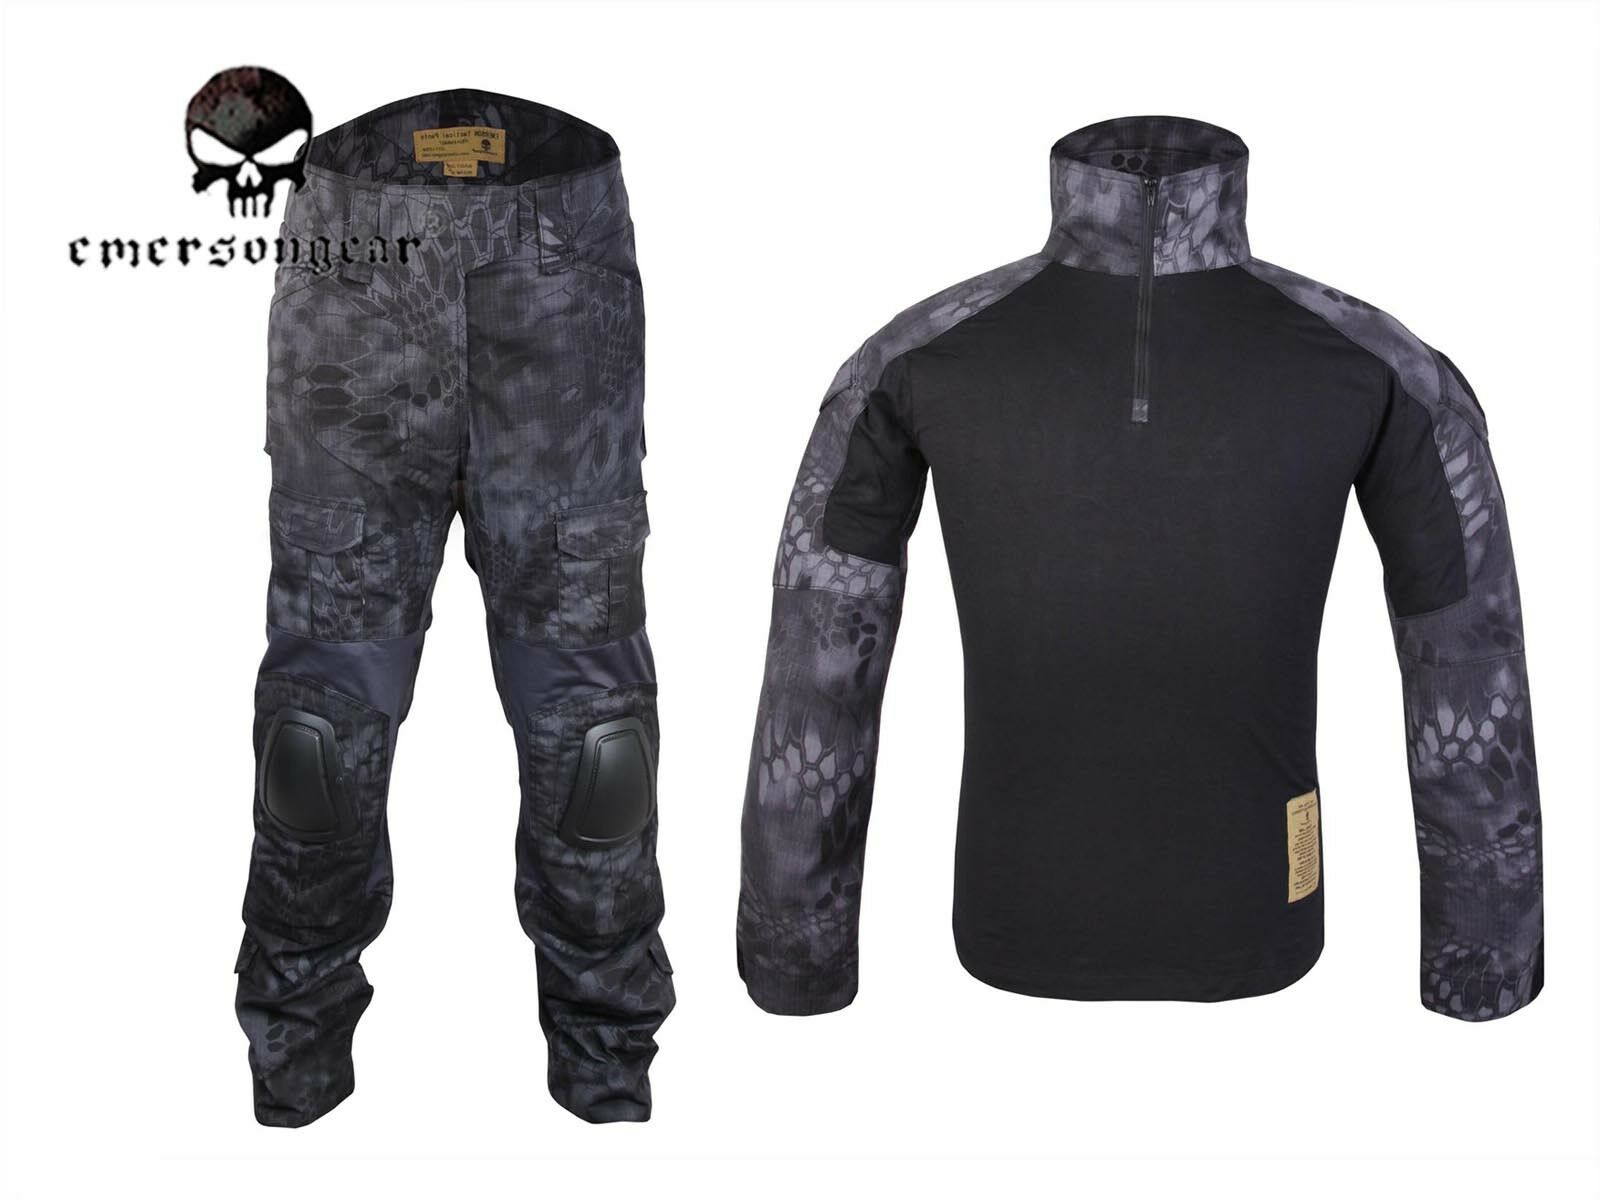 EMERSON Gen2 Cype Style Combat Uniform Tactical Hunting BDU TYP   stadium giveaways